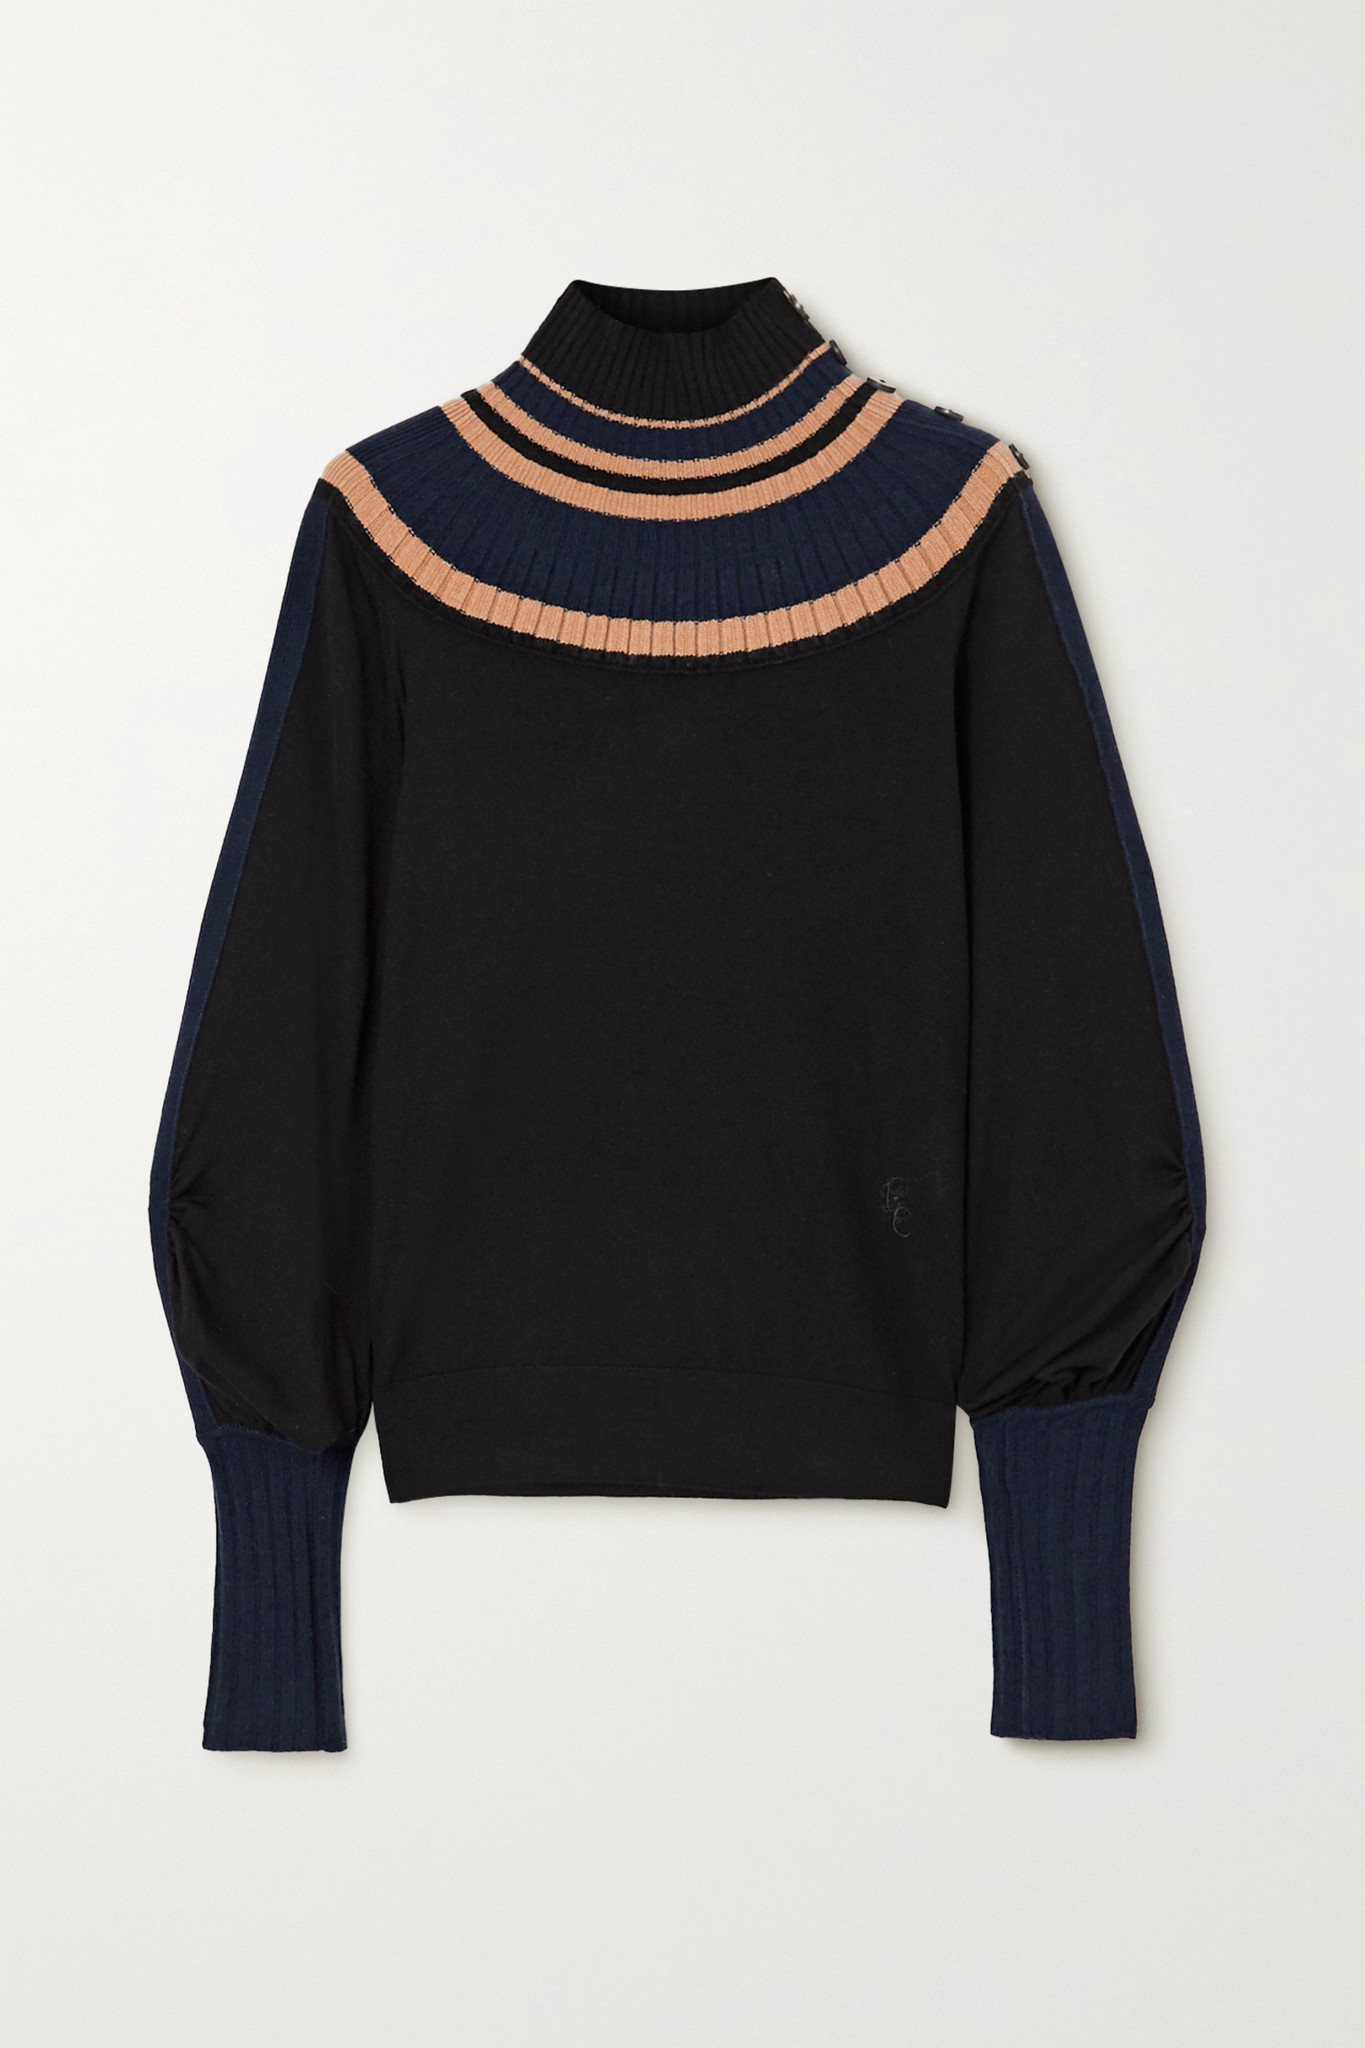 CHLOÉ - Striped Ribbed Wool Turtleneck Sweater - Blue - large